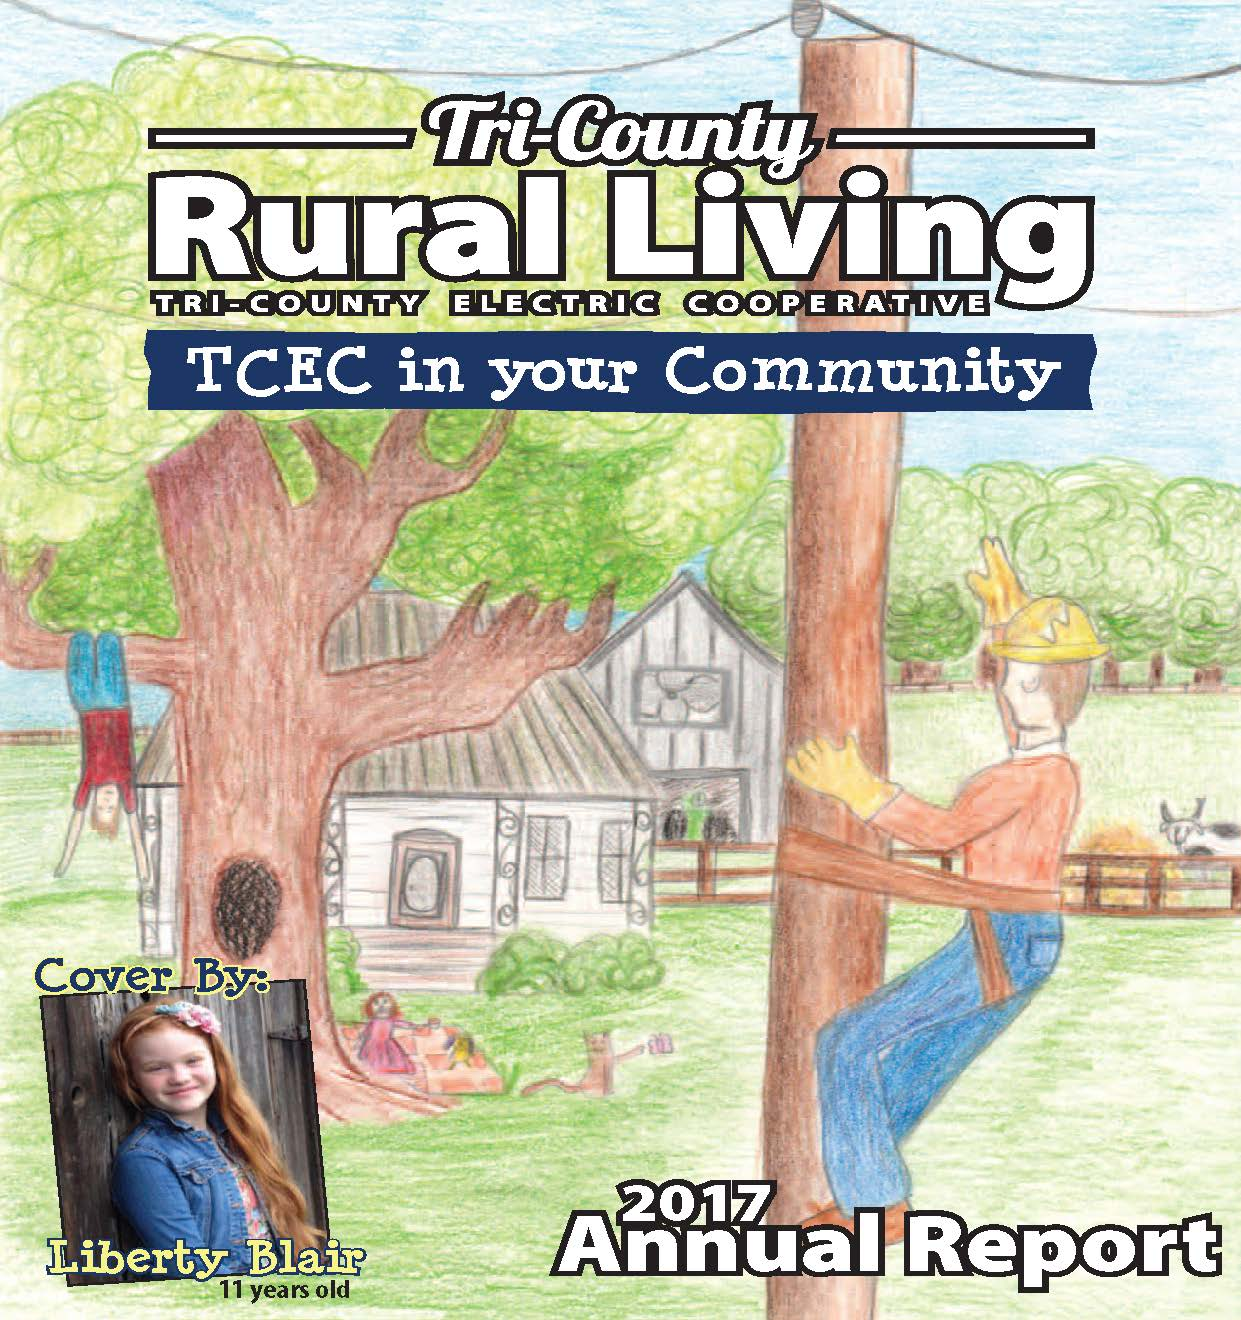 September/October 2017 Rural Living